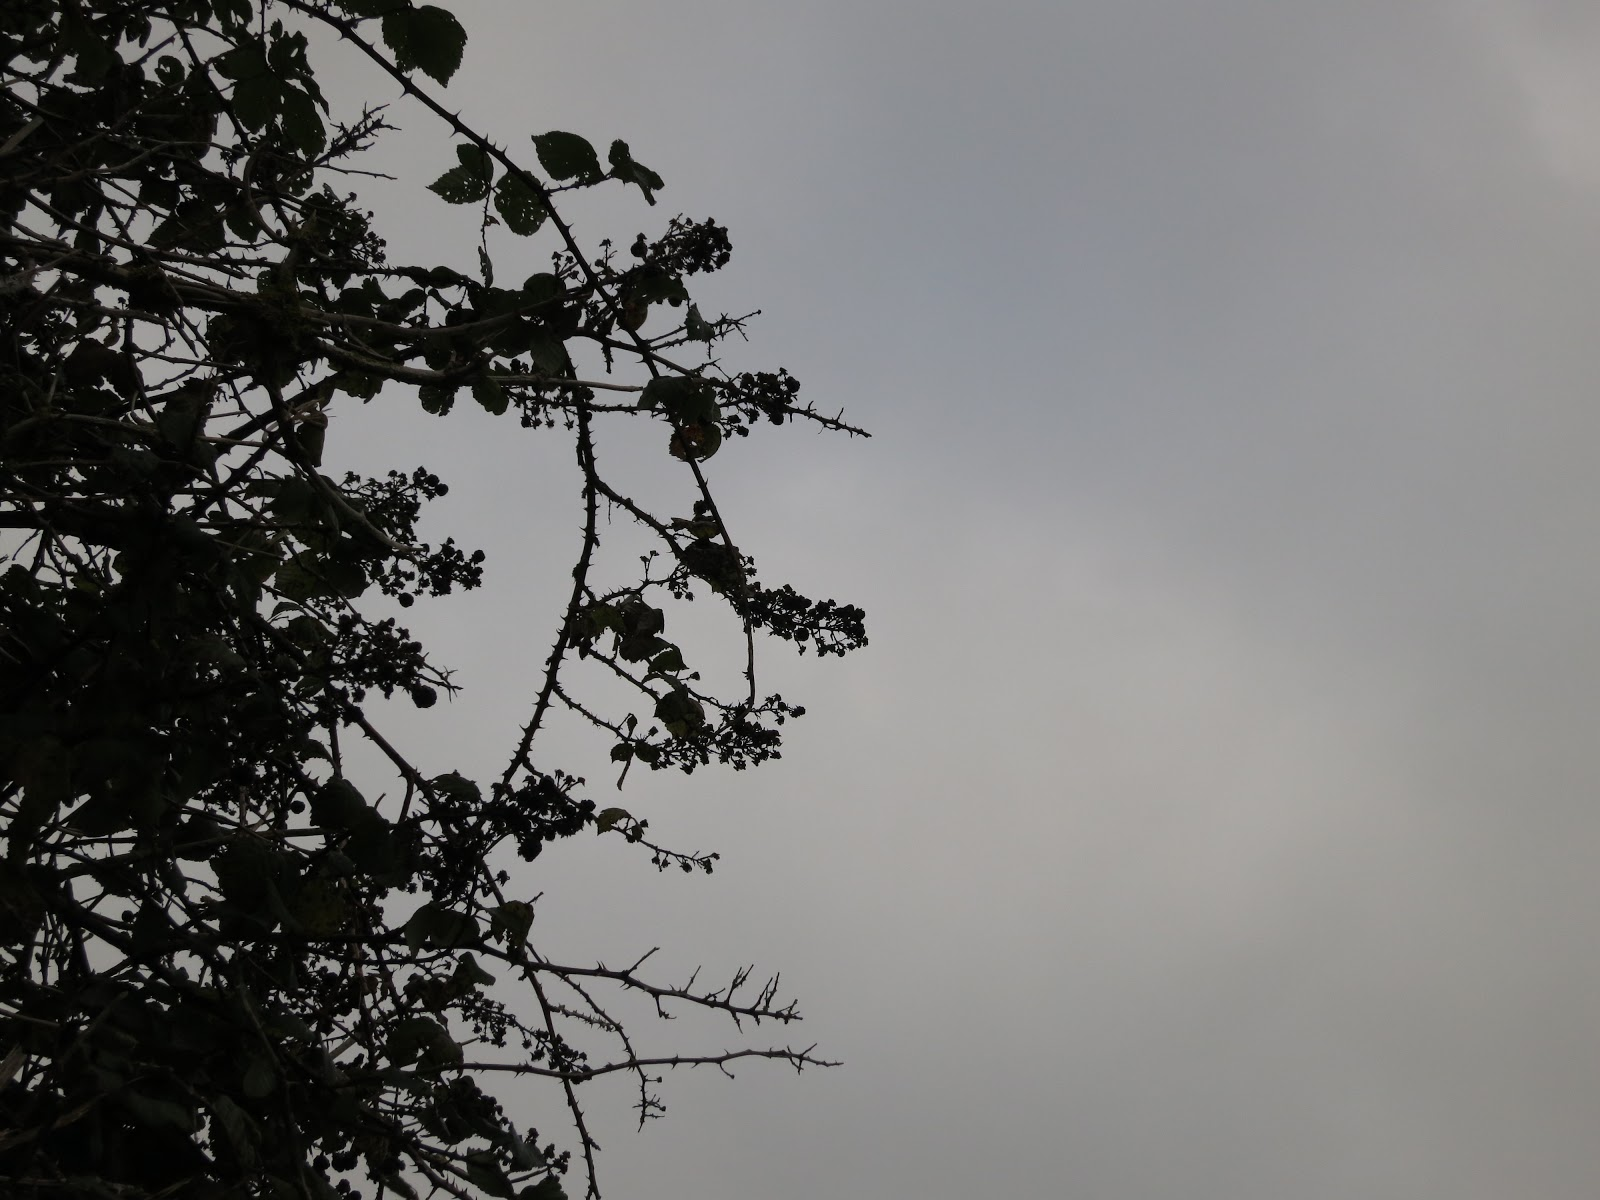 The silhouetted of old blackberries on bramble against a grey sky